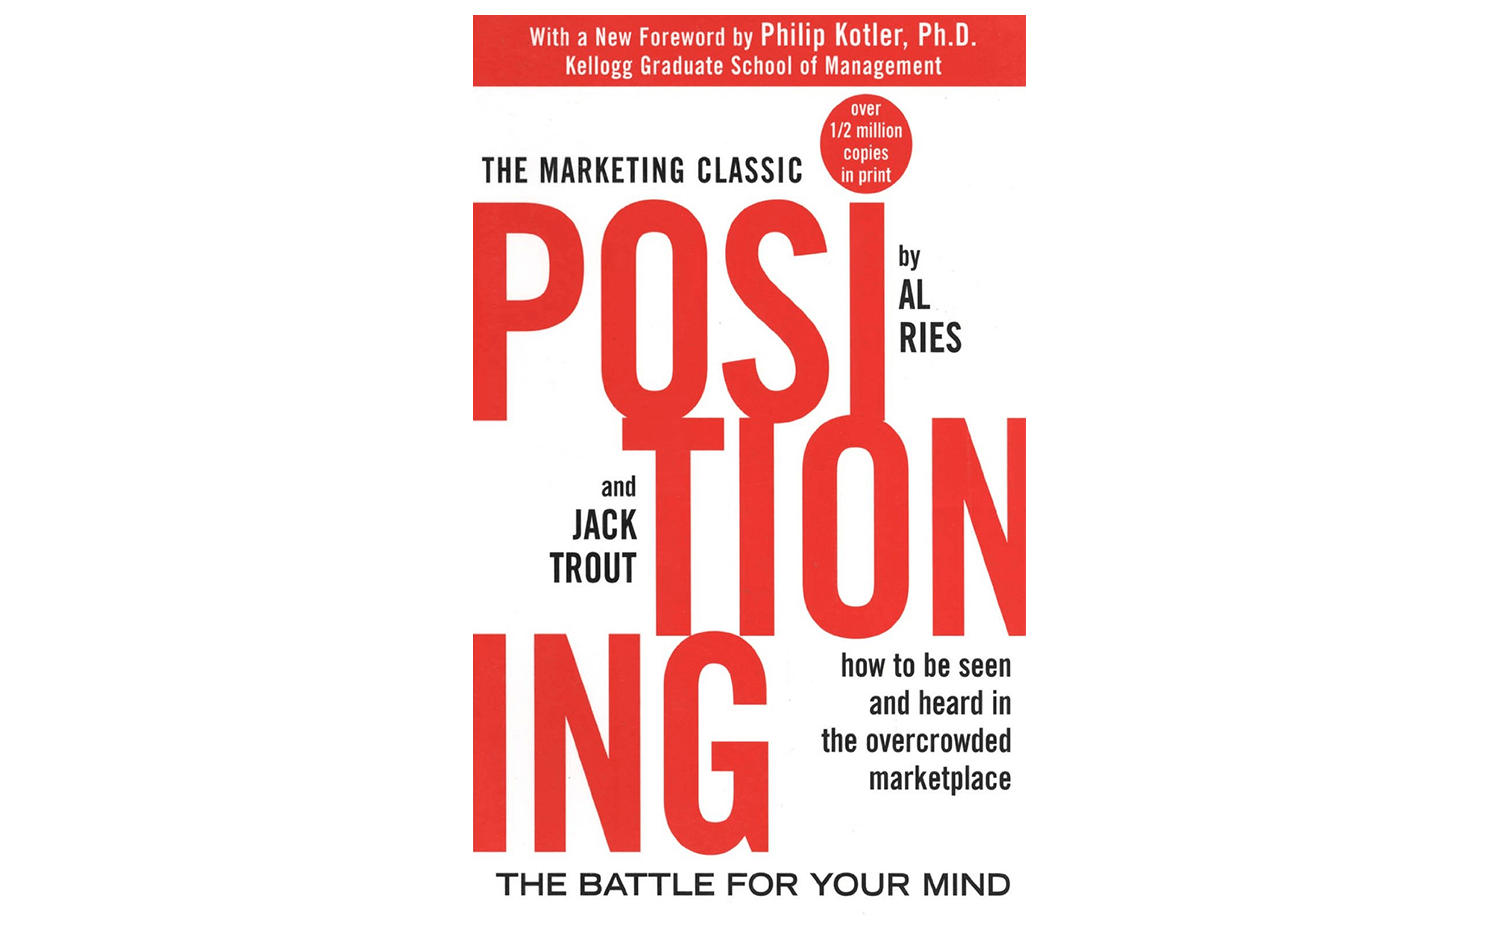 Positioning - best small business marketing book for branding and customer relations